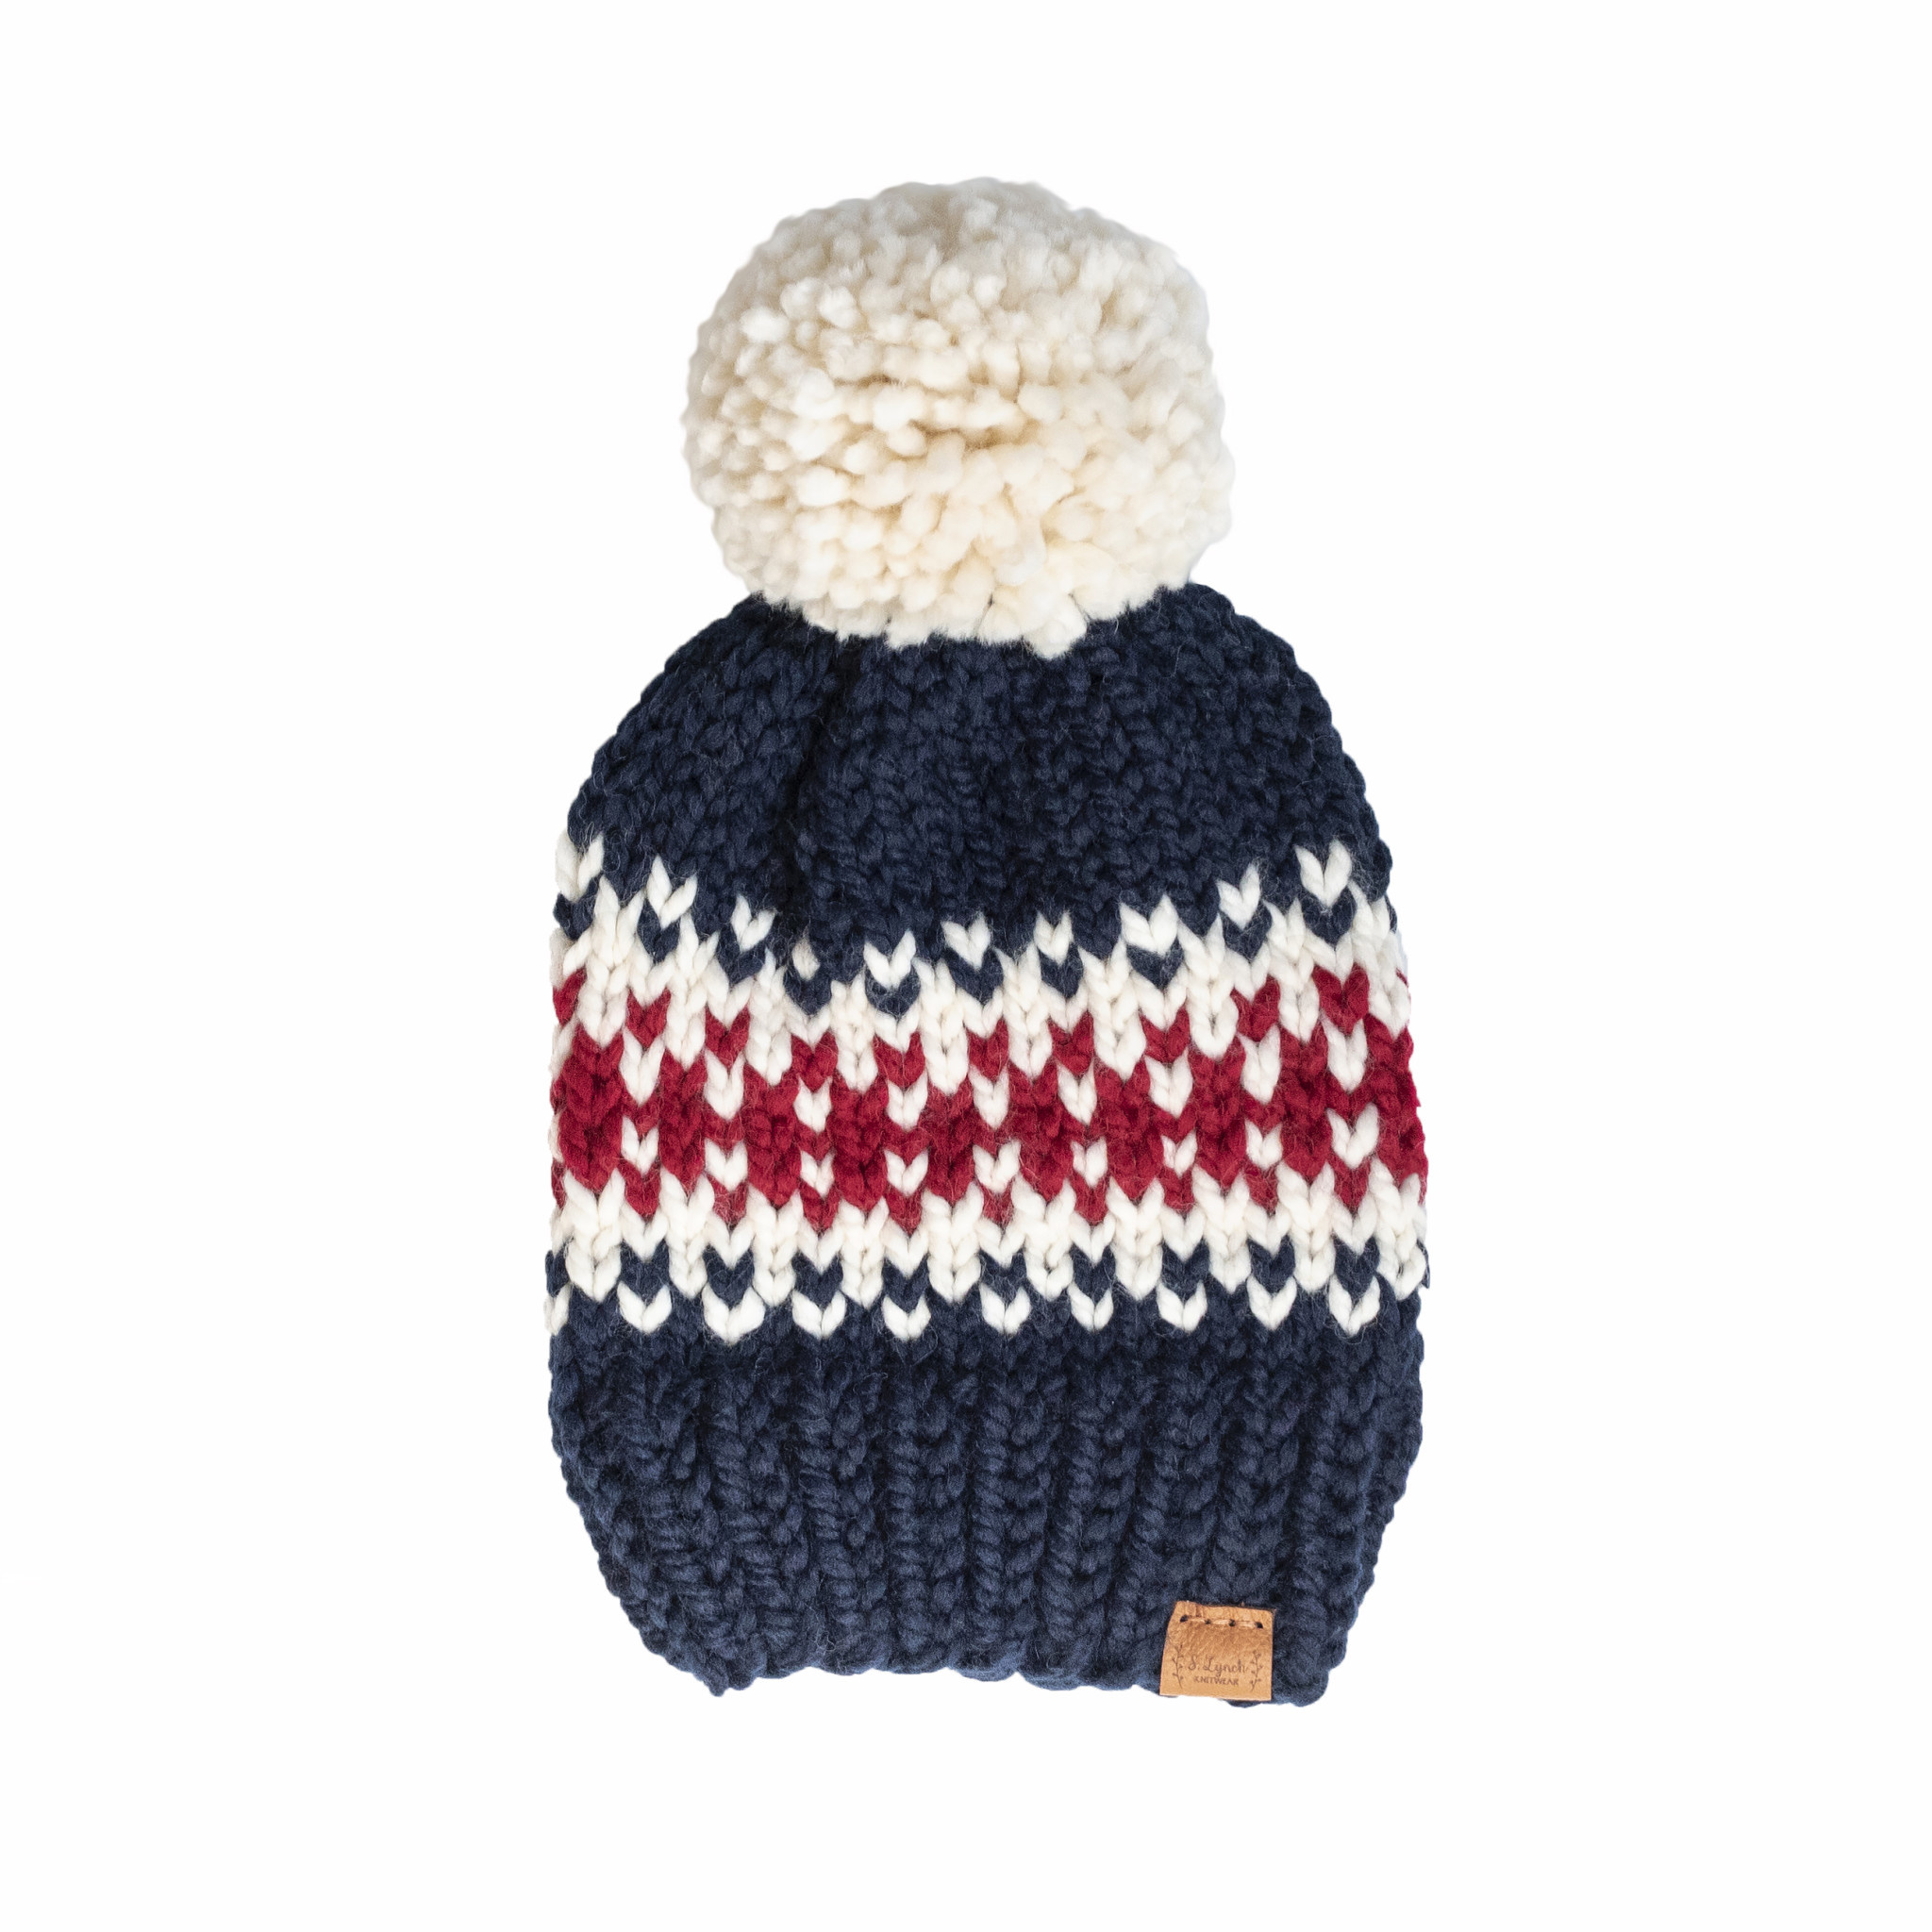 S. Lynch Knitwear S. Lynch Knitwear Adult Hat - Kennebunk